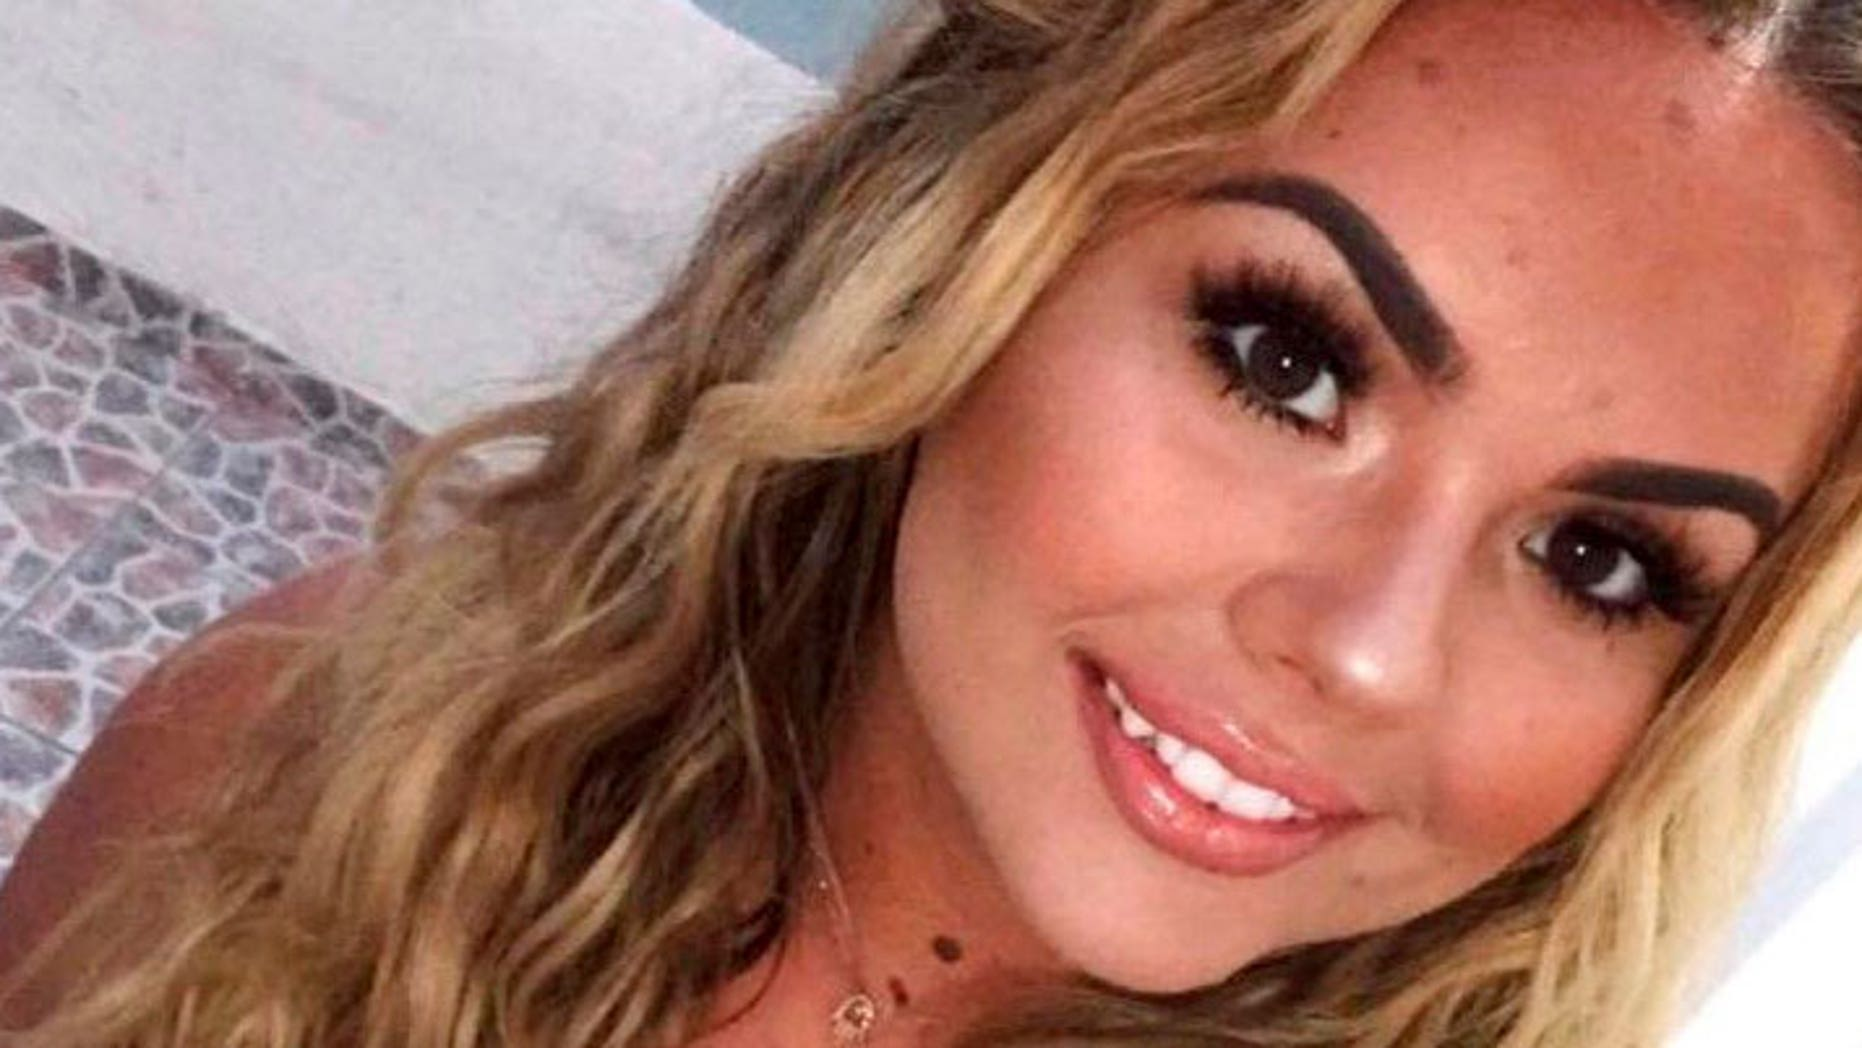 Lydia McDonnell reportedly suffered severe burns to her throat, lungs and arm in the fire.